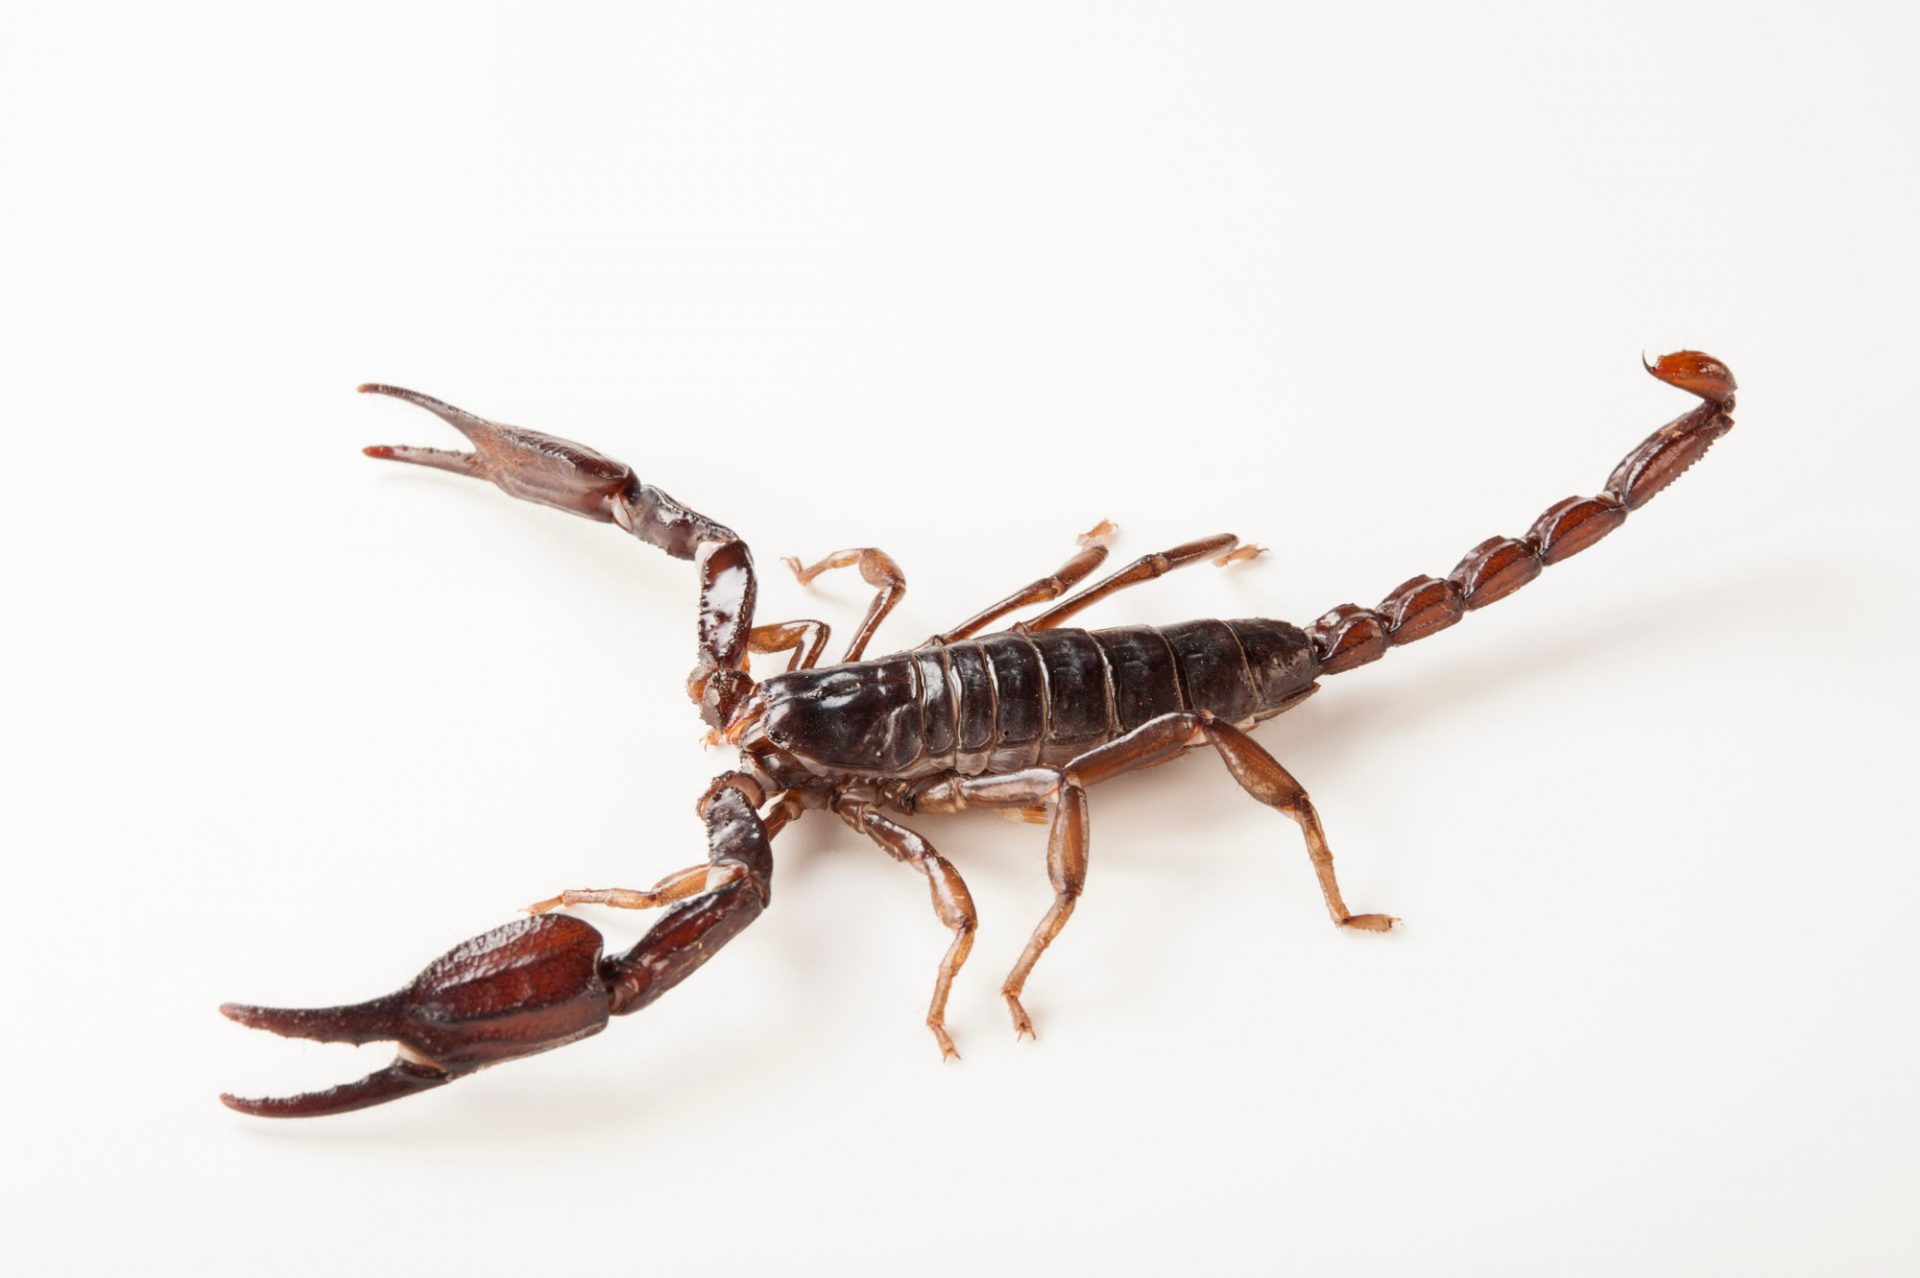 An Asian forest scorpion (Heterometrus longimanus) at the Gladys Porter Zoo in Brownsville, Texas.